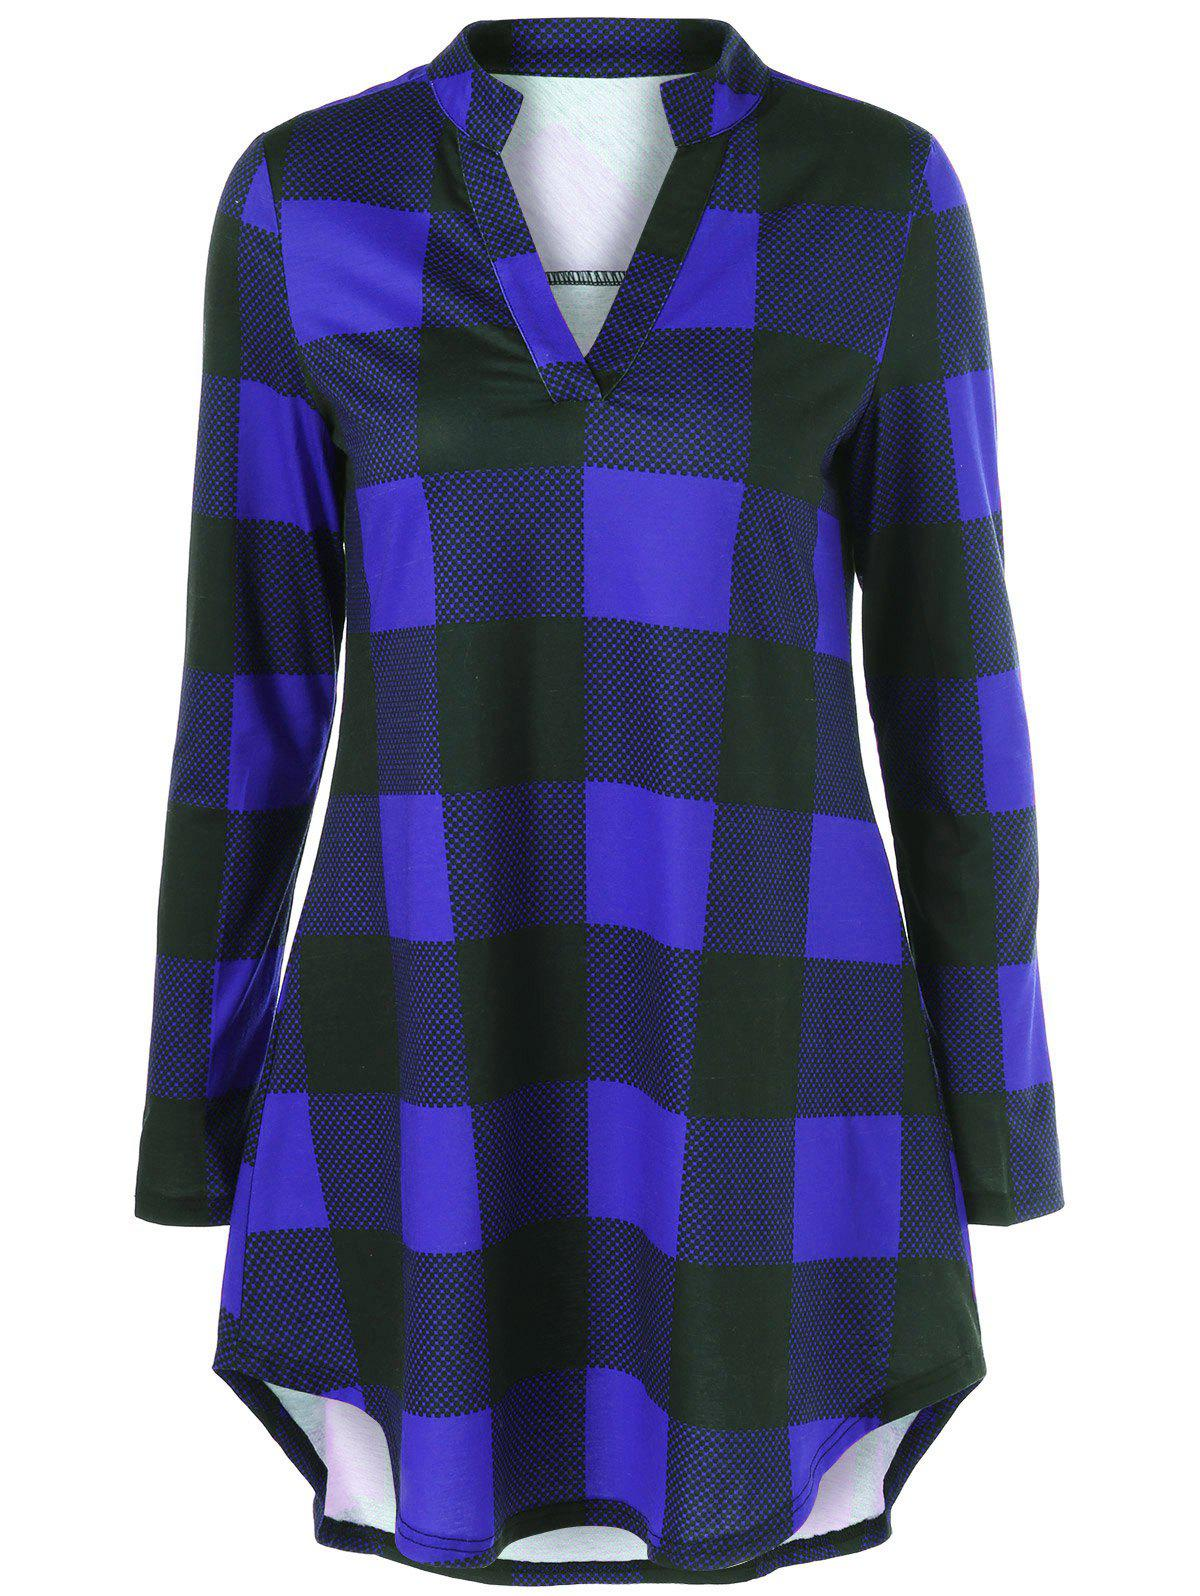 Split Neck Long Plaid Boyfriend T-ShirtWOMEN<br><br>Size: M; Color: BLUE; Material: Polyester,Spandex; Sleeve Length: Full; Collar: V-Neck; Style: Casual; Pattern Type: Plaid; Season: Fall,Spring; Weight: 0.2780kg; Package Contents: 1 x T-Shirt;